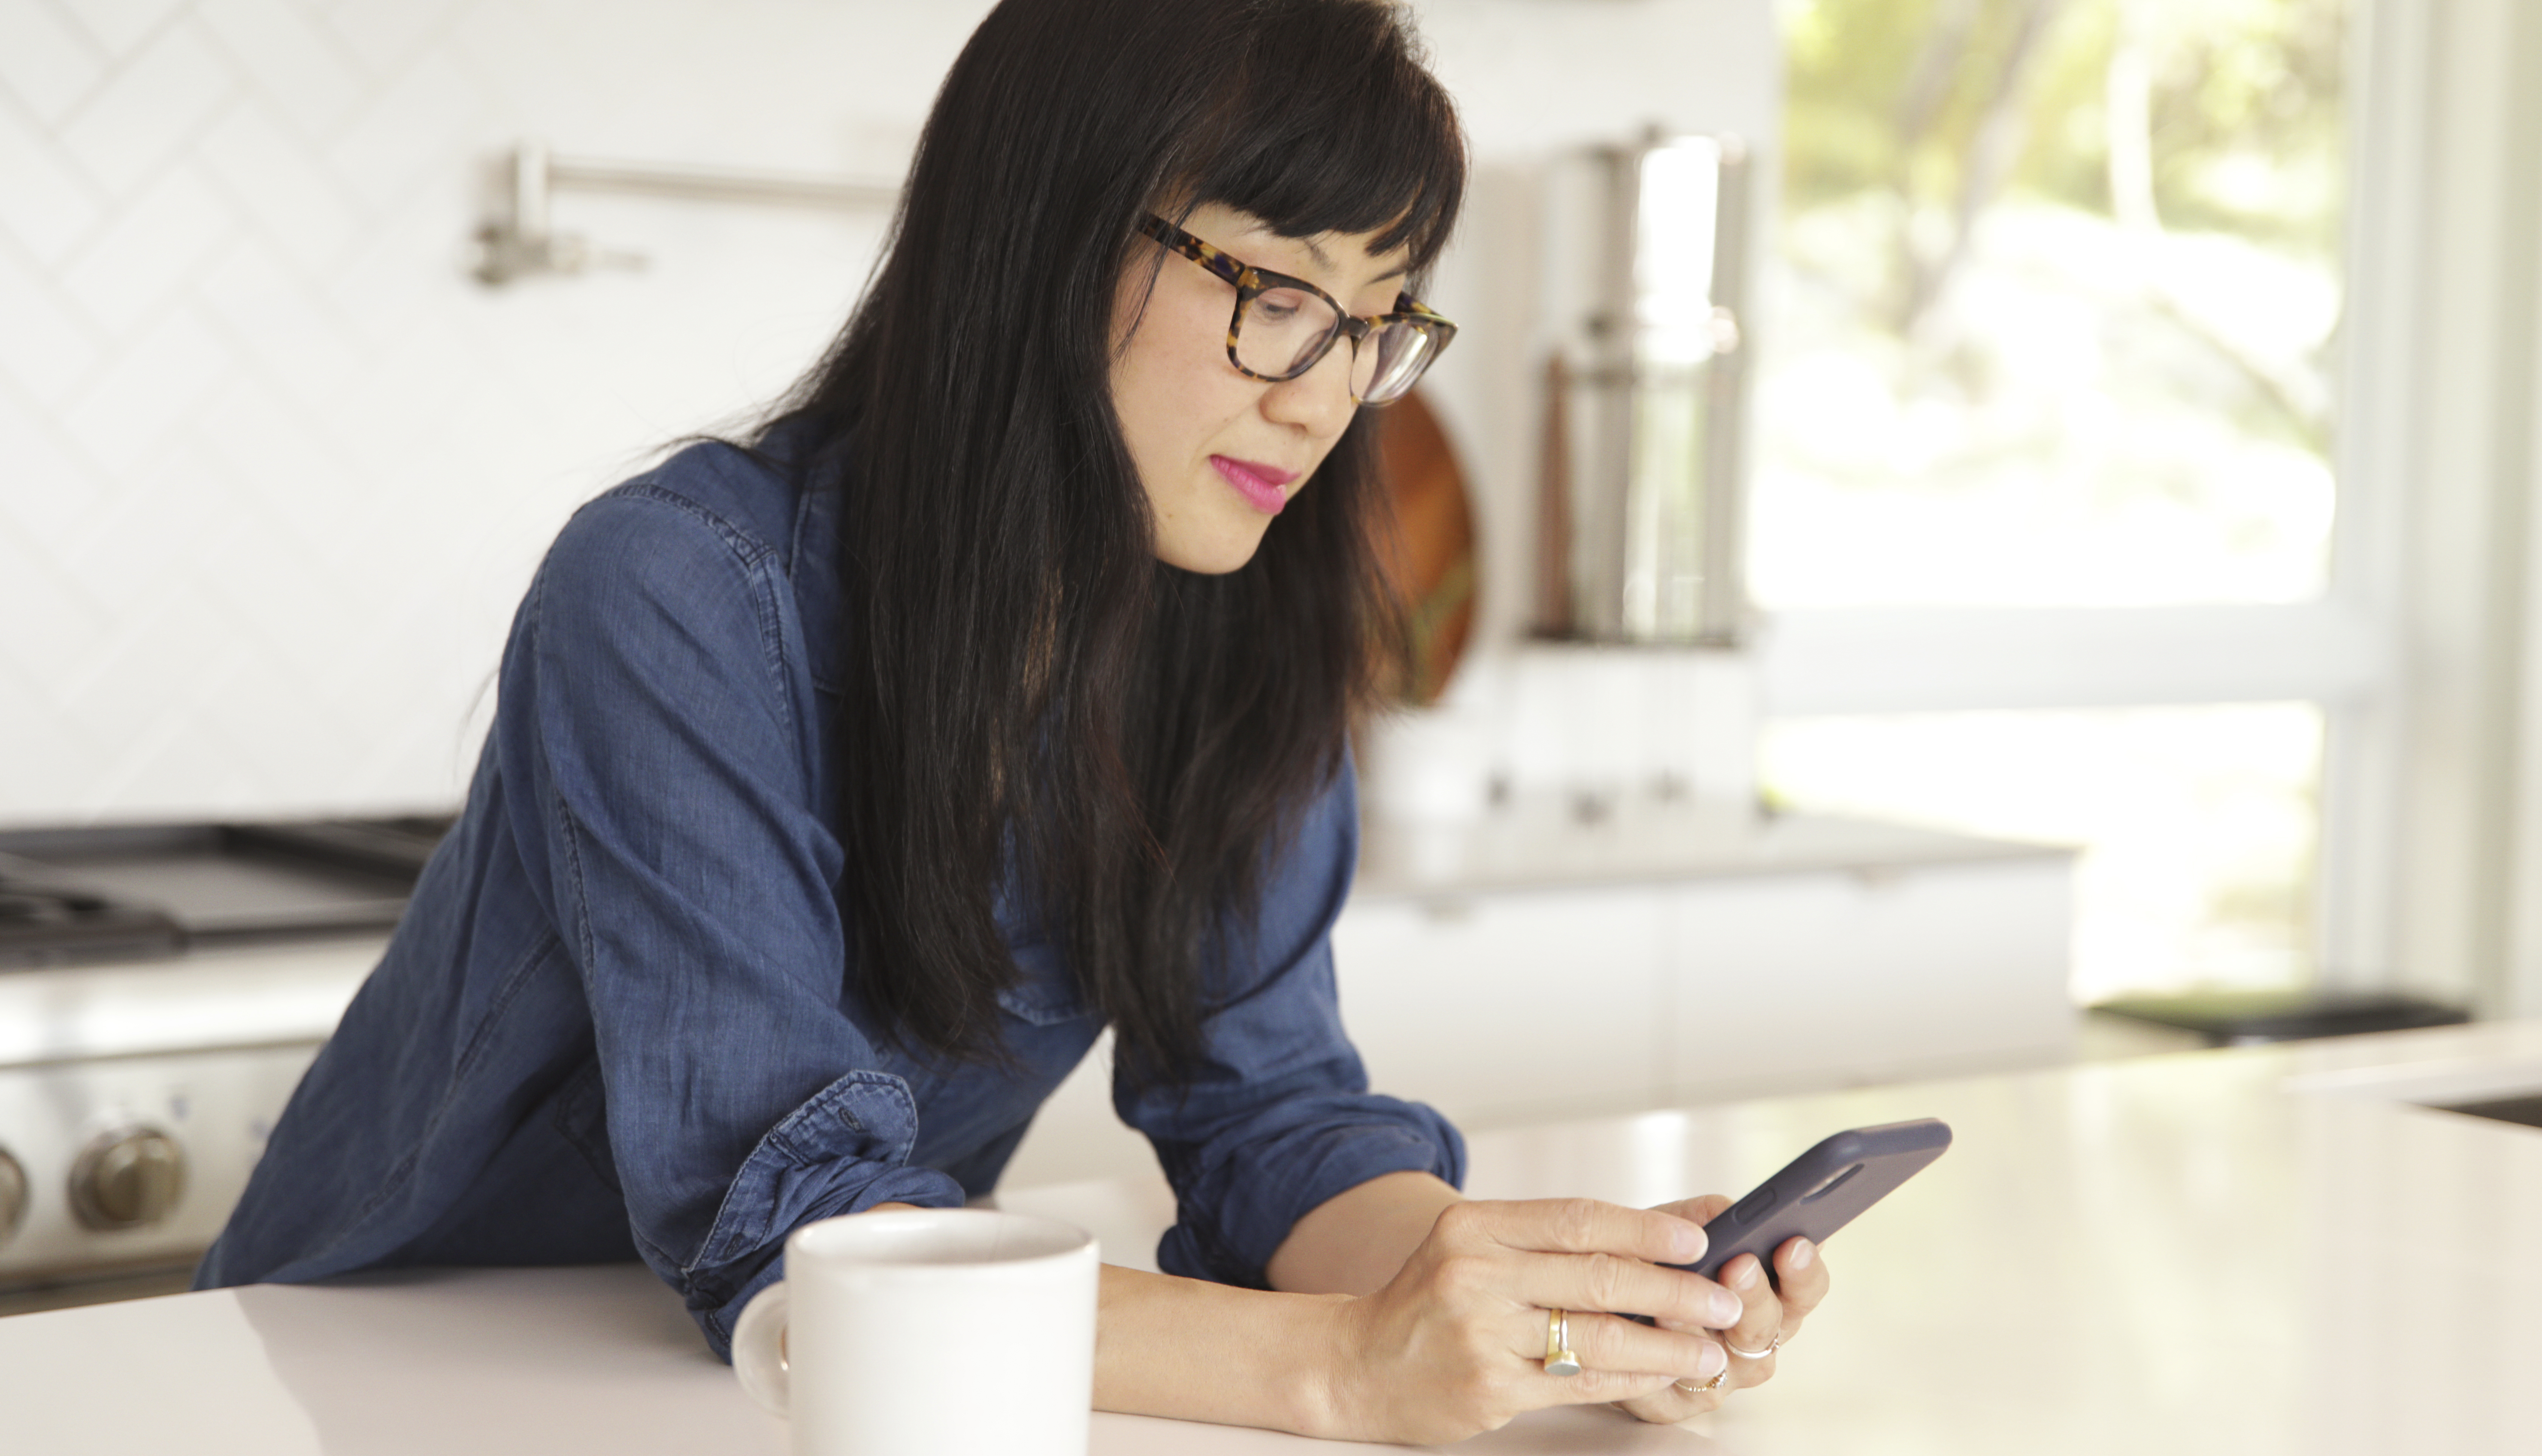 Woman in kitchen looking at phone